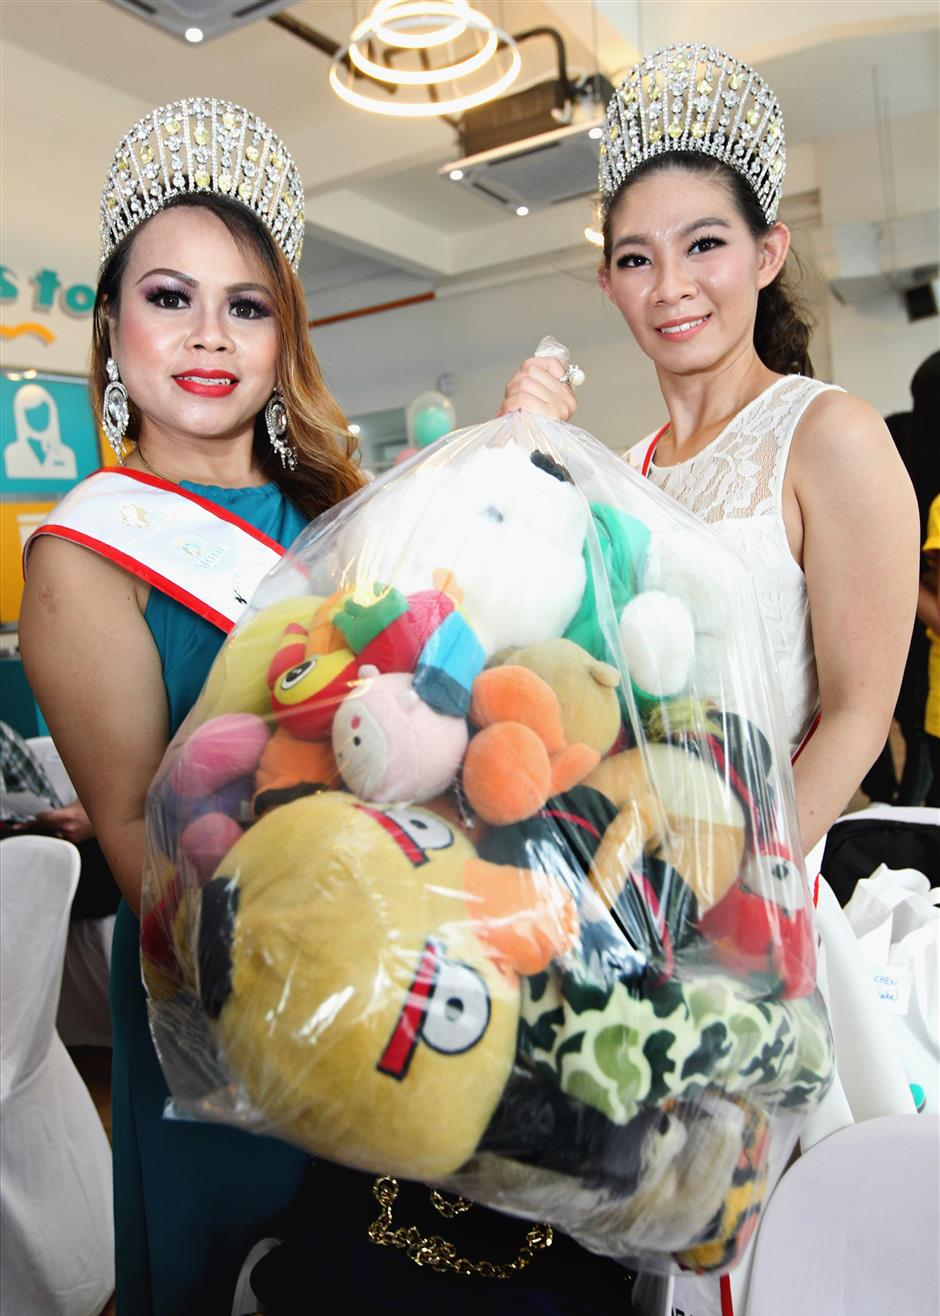 Classic Mrs Shine From Within Ambassador 2017 Caseylina Dior, Miss Shine From Within Ambassador 2017 Nicole Lau showing the bag of pre-loved soft toys at the 'Donate your pre-loved soft toys' campaign.